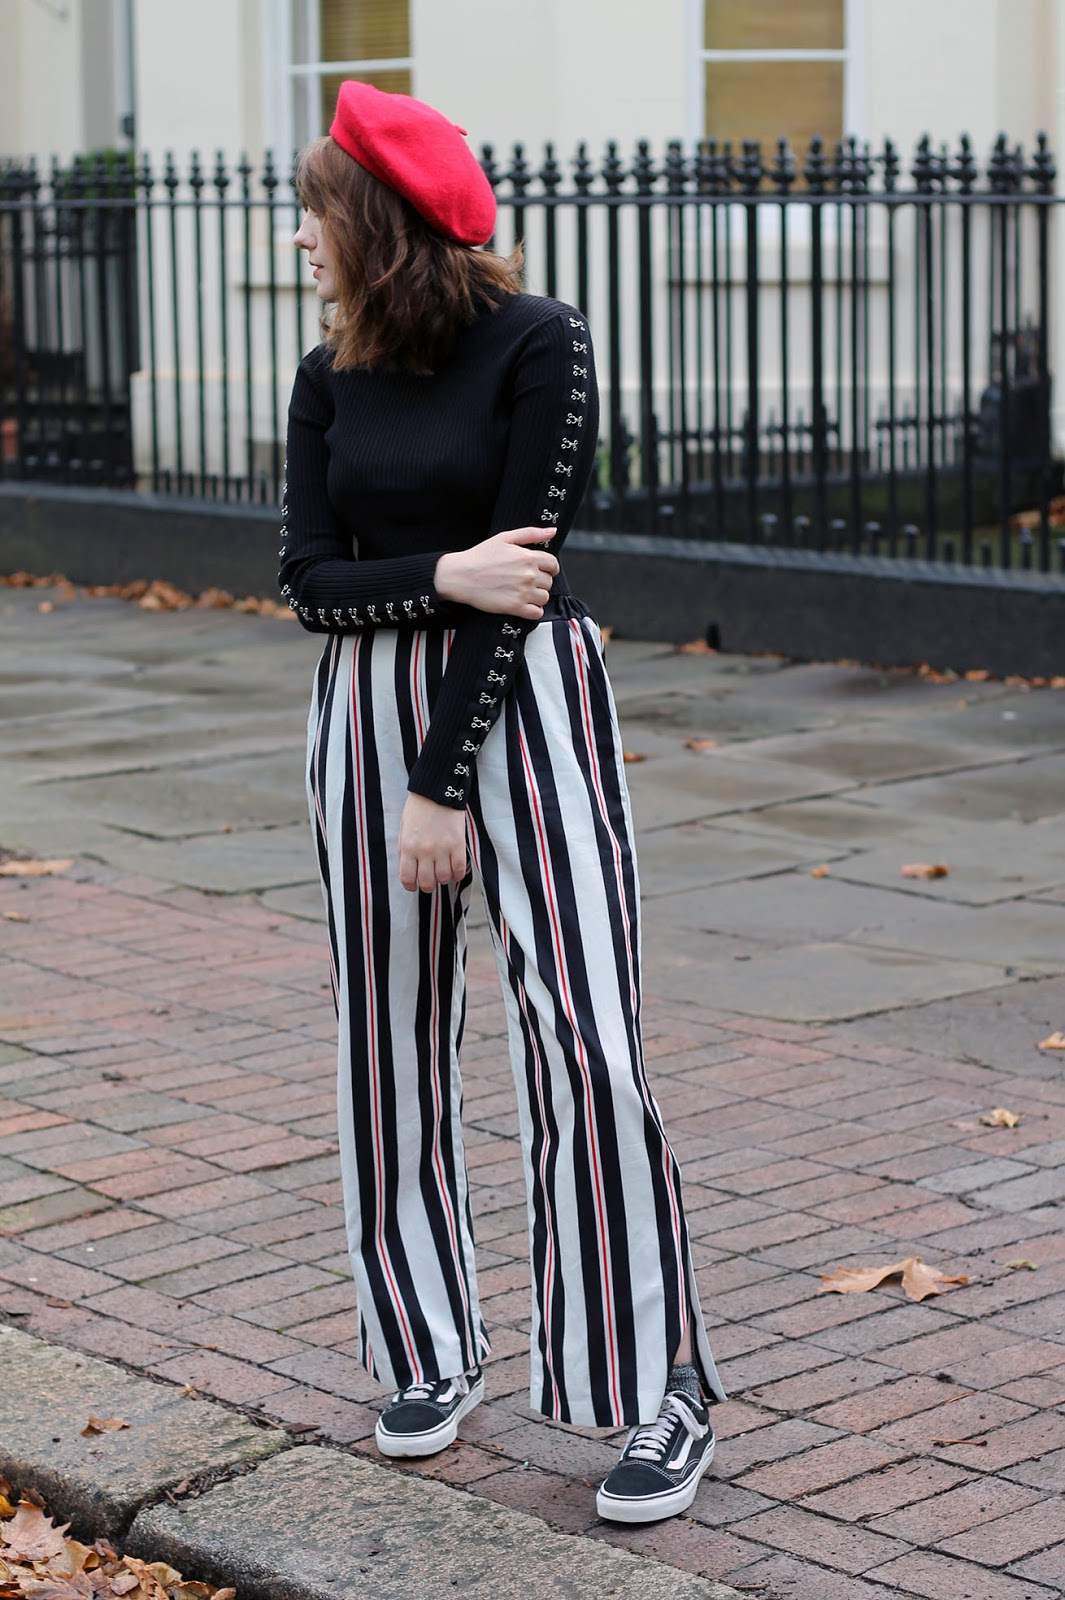 Liverpool fashion blogger wearing Tobi tia knit